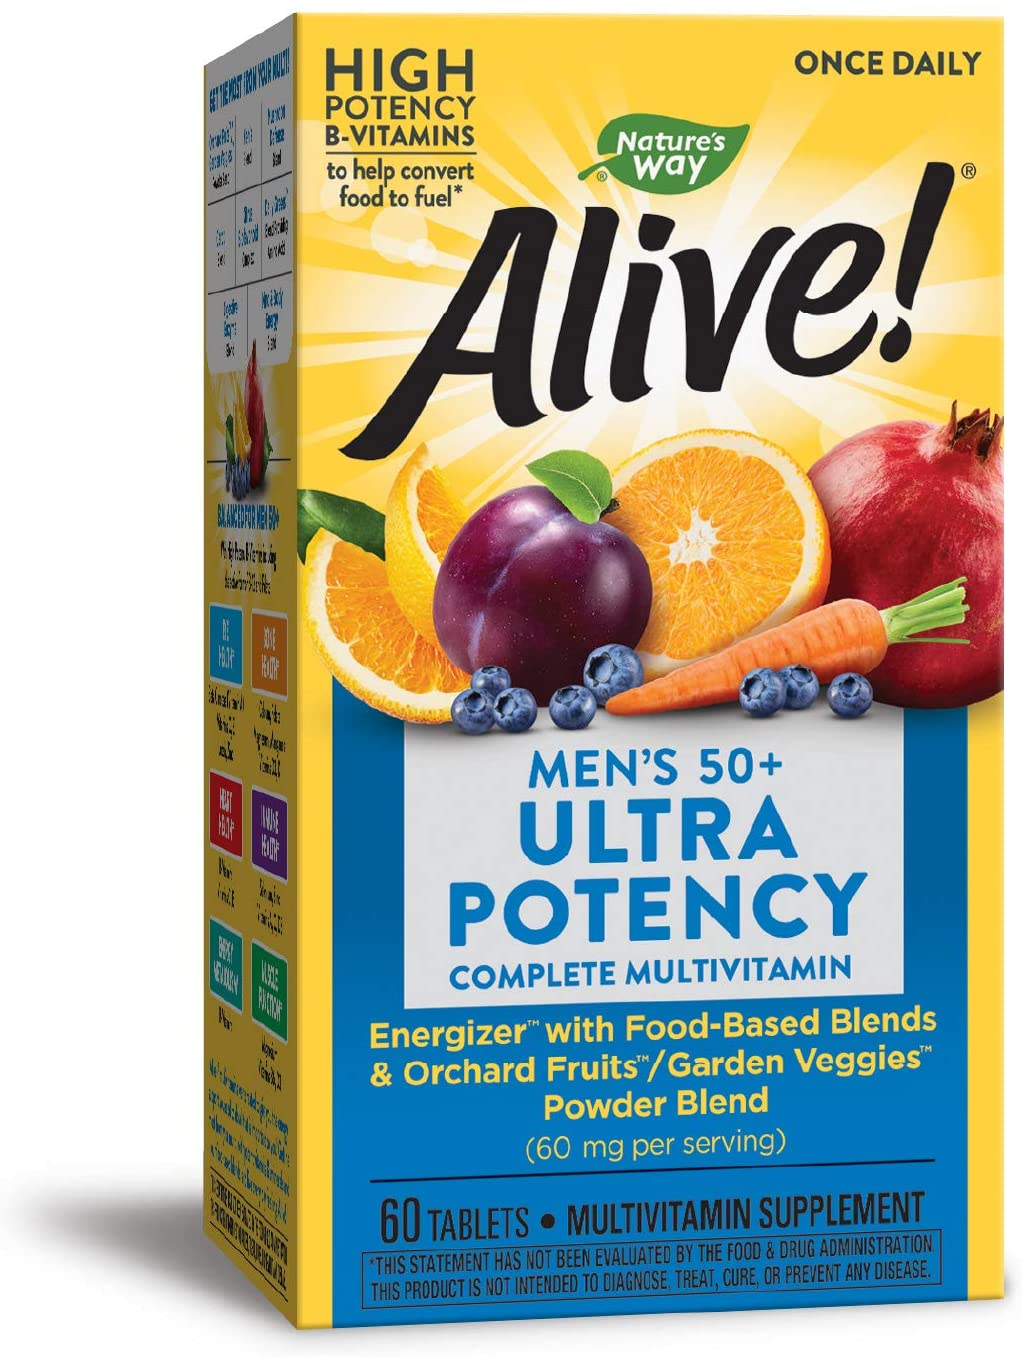 Nature's Way Max 69% OFF Alive Once Daily Max 88% OFF Men's 6 50+ Tablets Potency Ultra